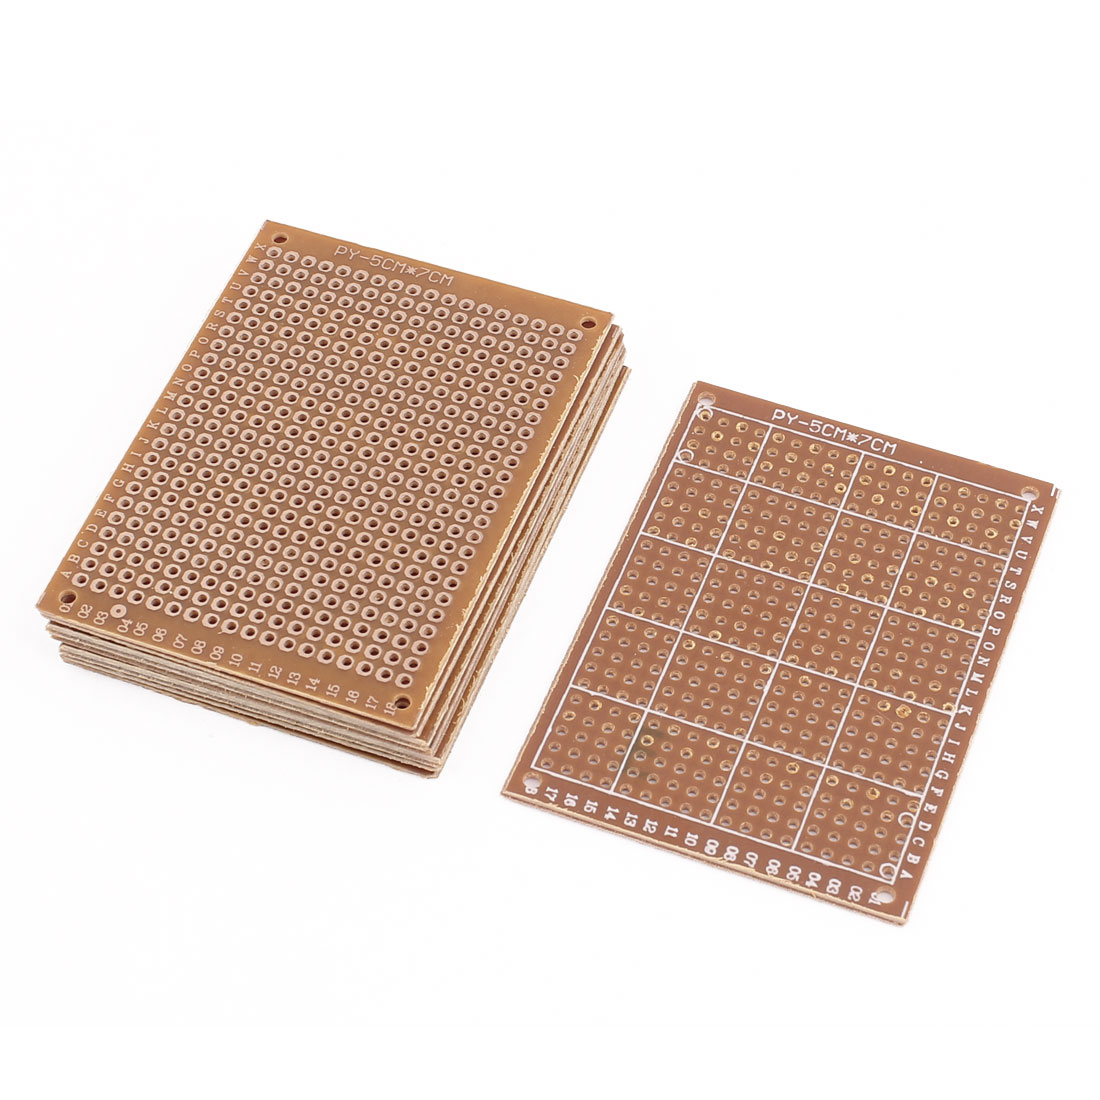 8pcs 5x7cm Single Sided Prototype Universal PCB Board Strip Board Breadboard